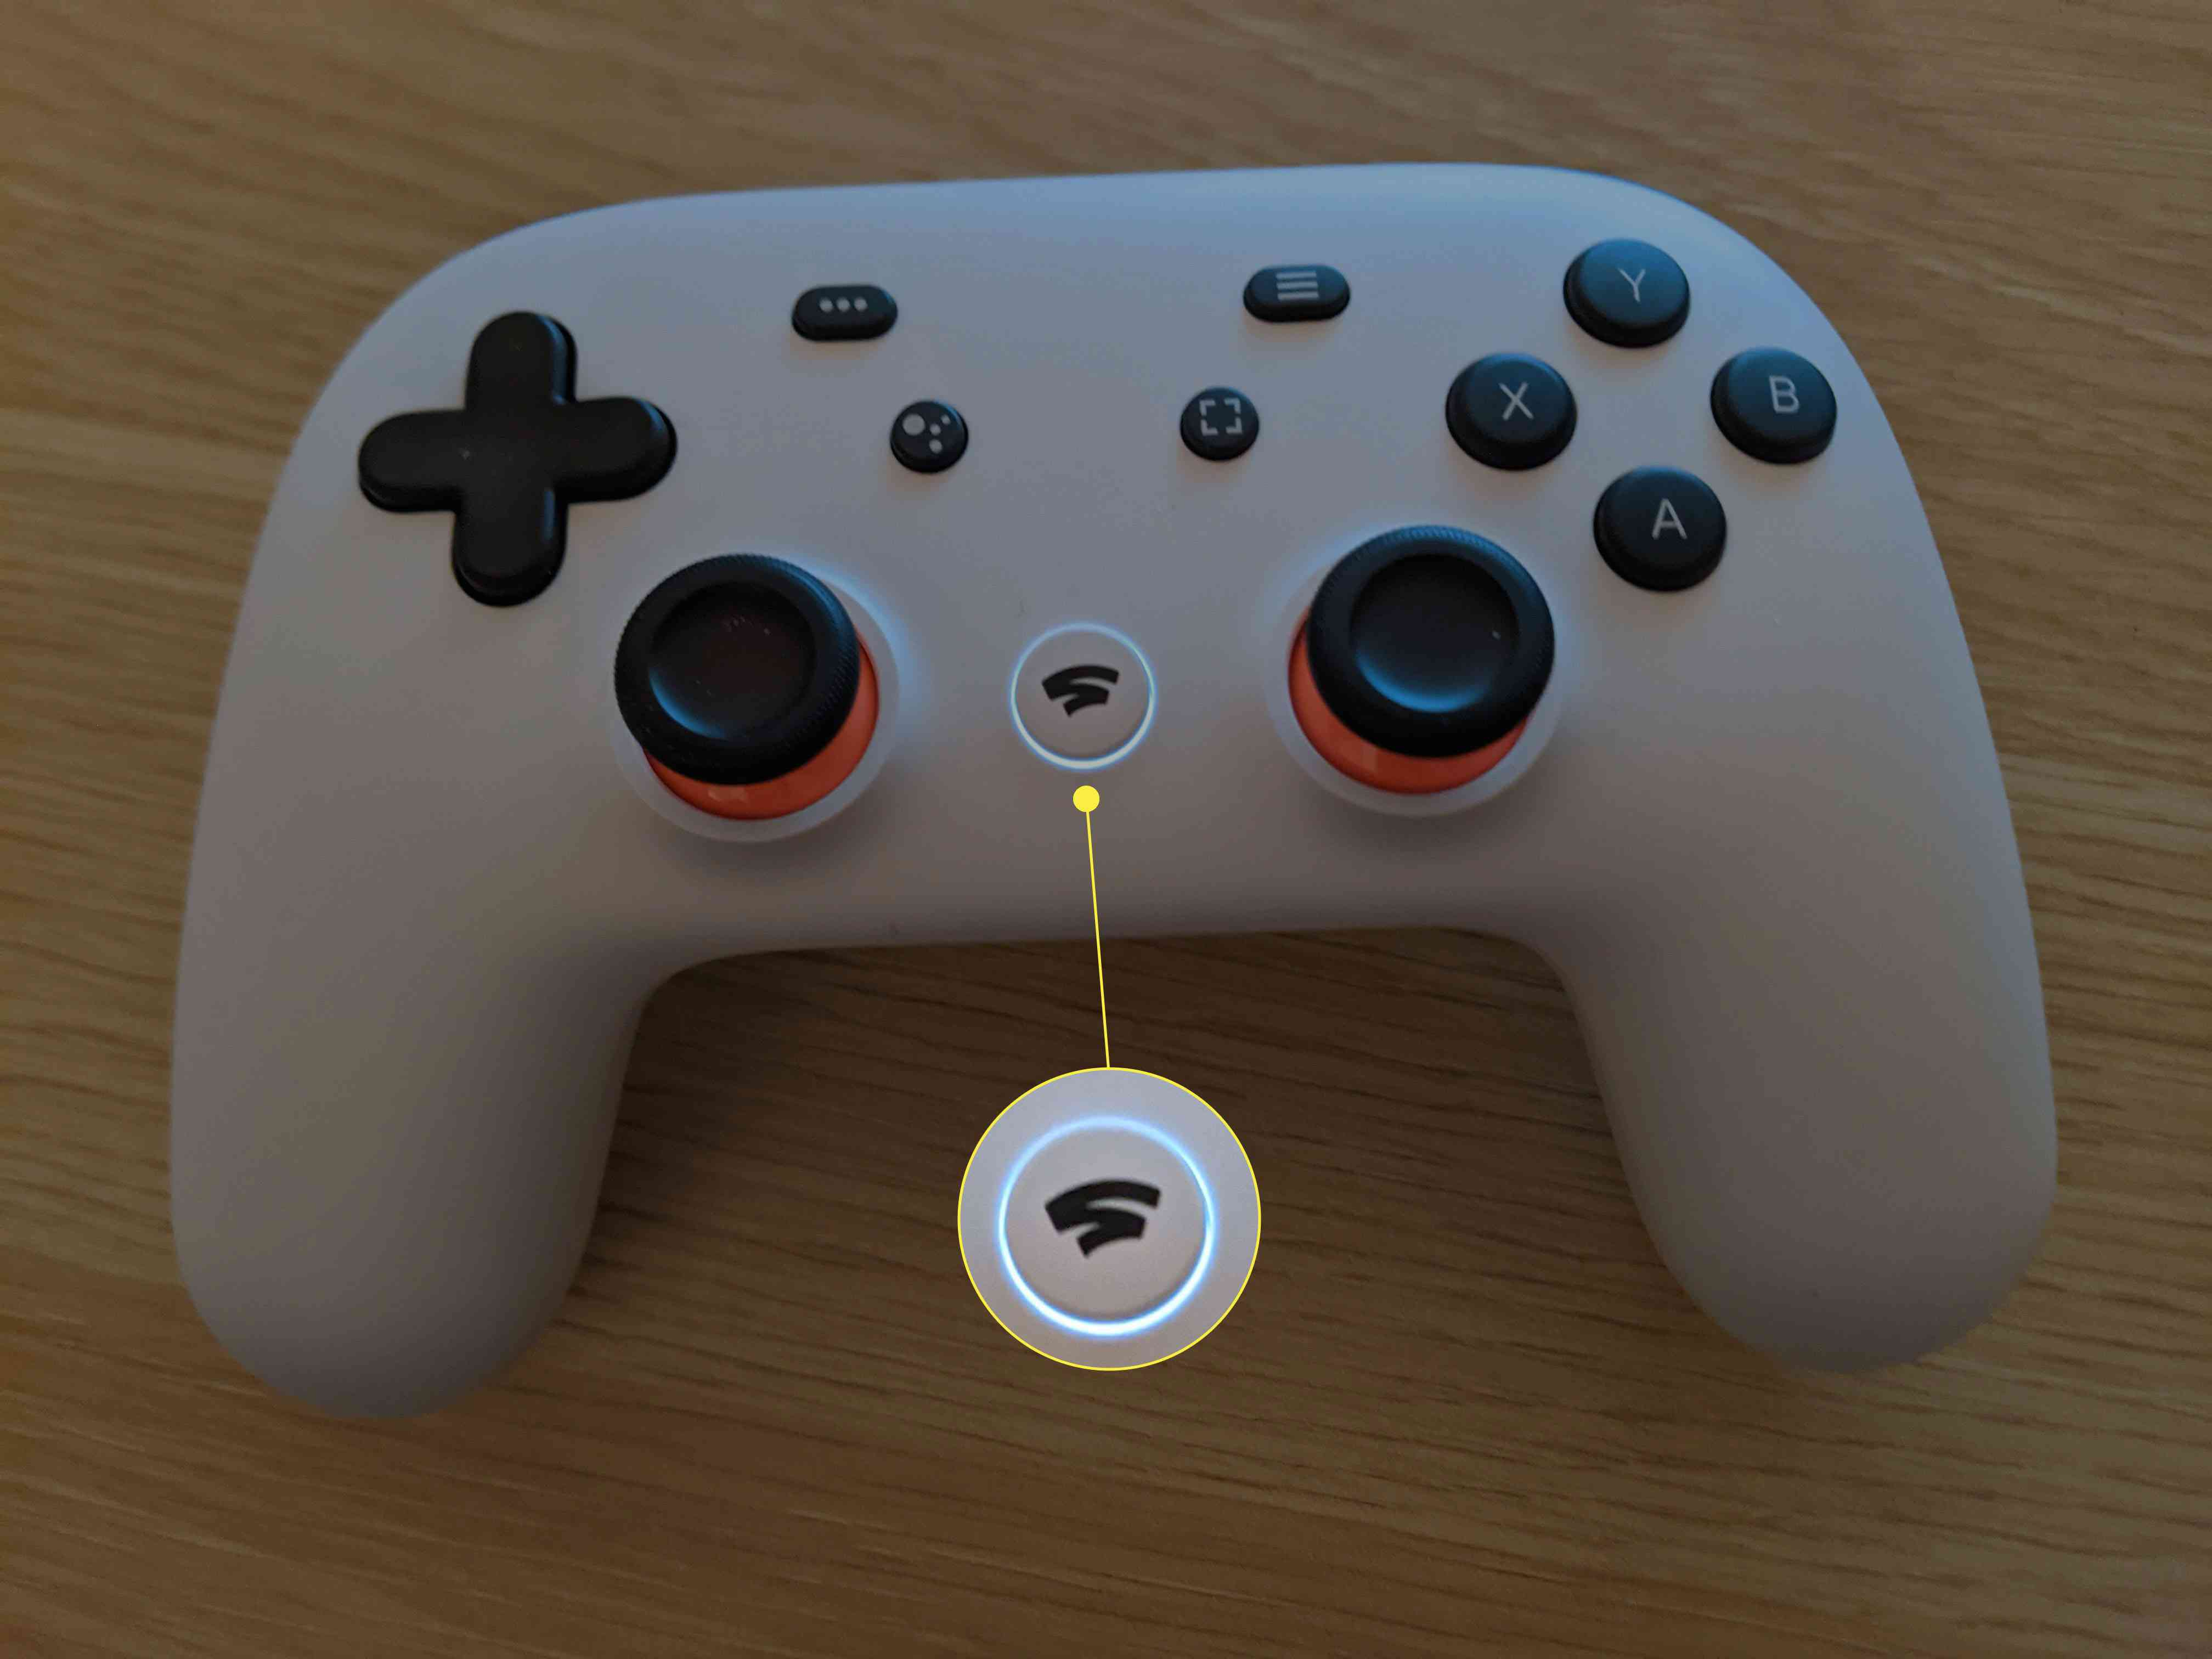 A Stadia controller with the Stadia button flashing white.